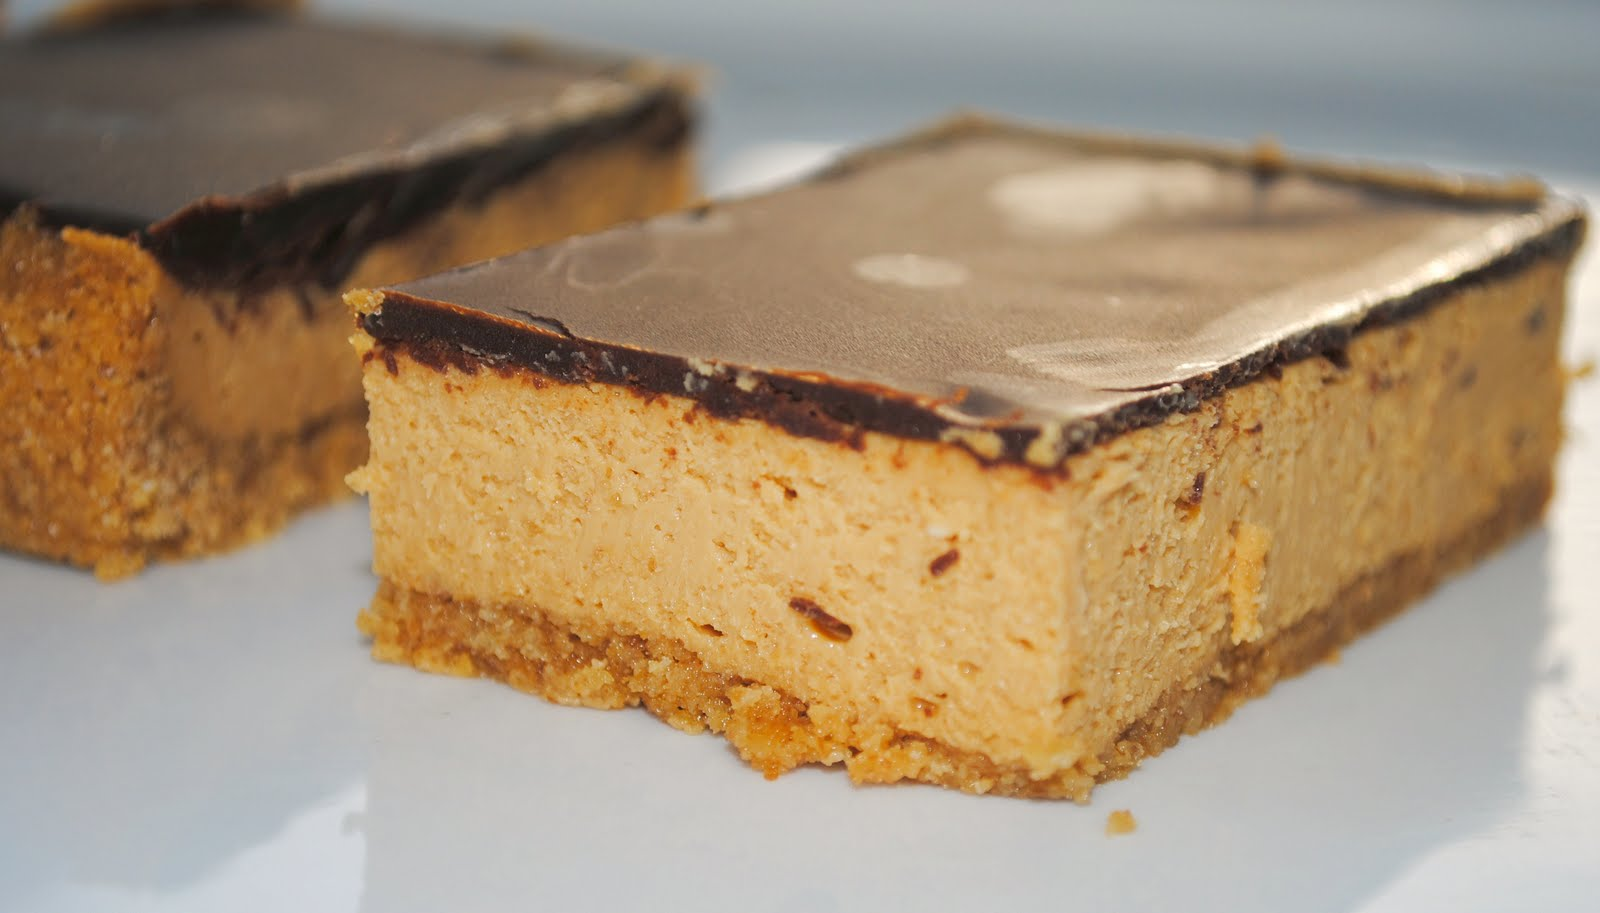 Homemade By Holman: Dulce de Leche Cheesecake Bars